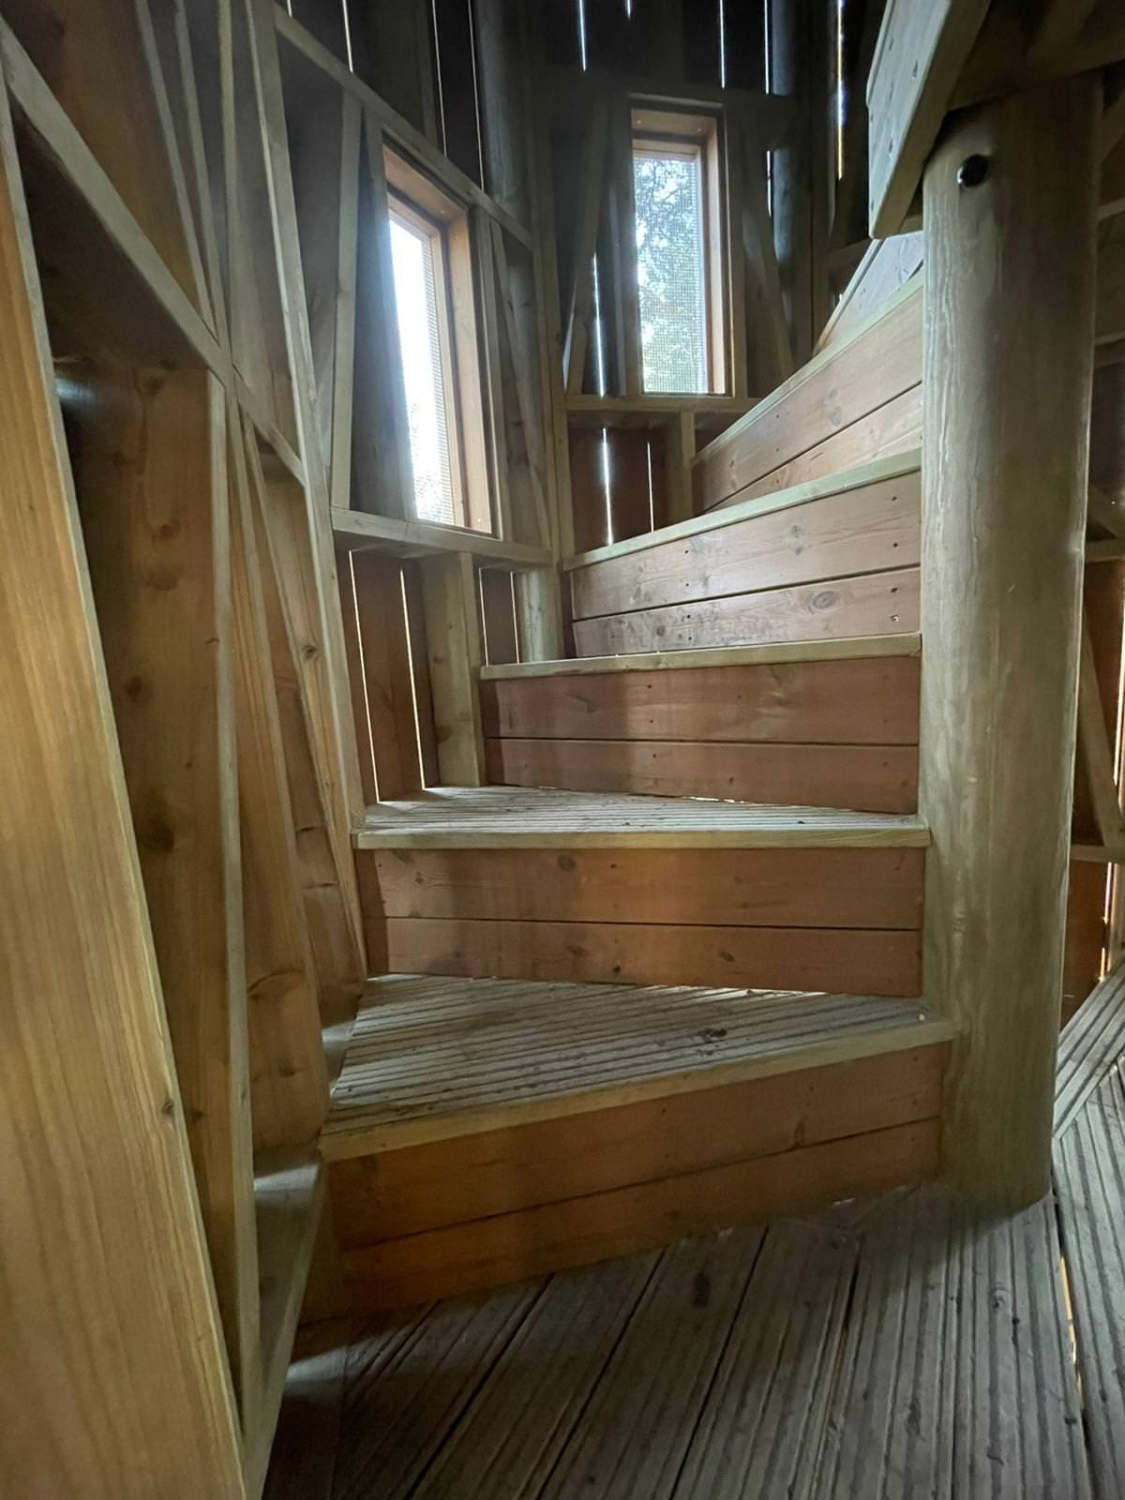 The new adventure play area at Sandringham by CAP.Co stairway to the top of the tower